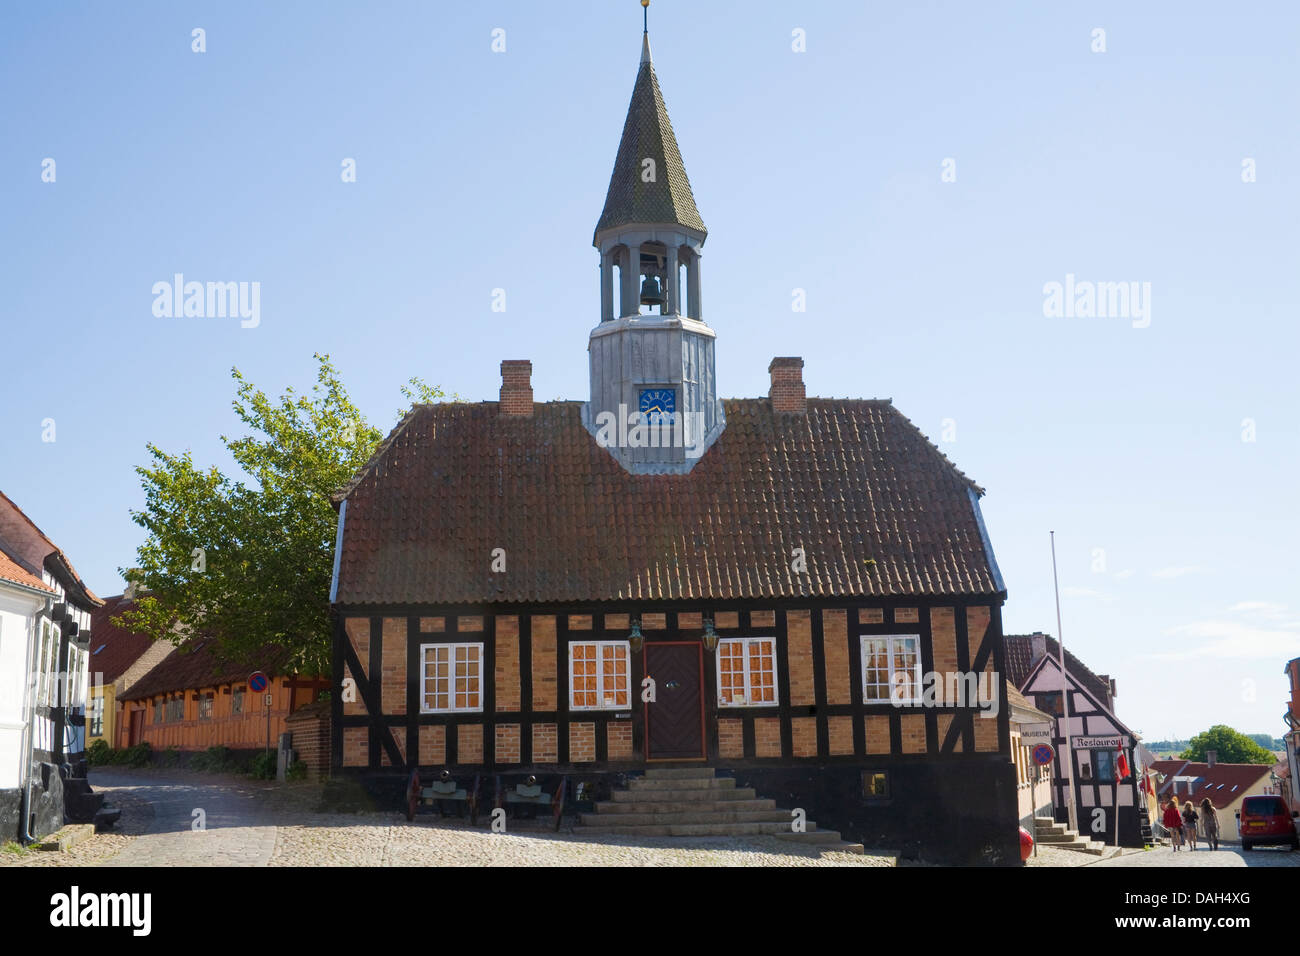 Ebeltoft Denmark EU Town Hall constructed 1789 with church bell tower in cobbled town centre square in Denmarks Stock Photo